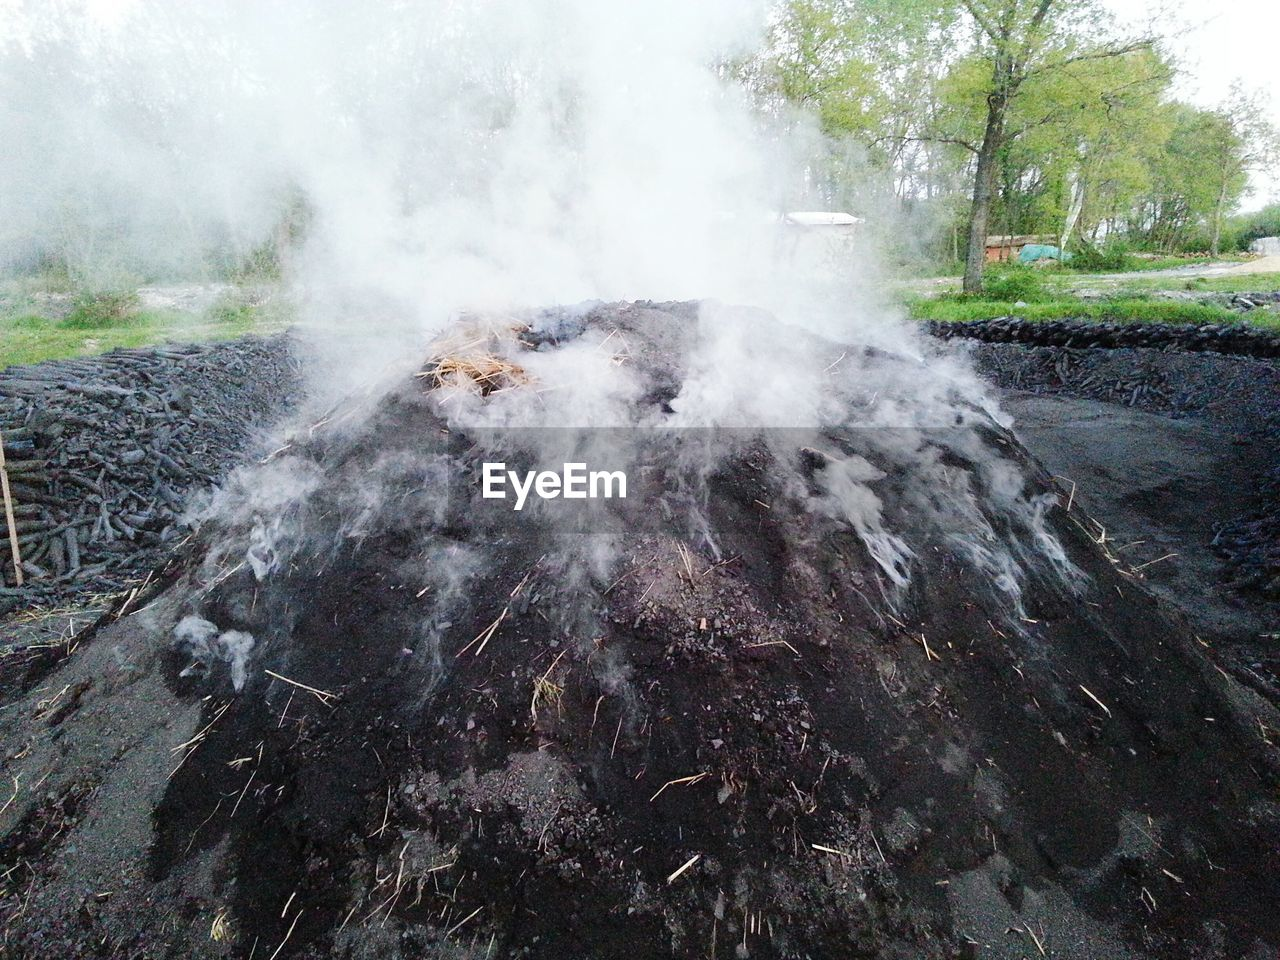 smoke - physical structure, steam, no people, day, outdoors, nature, hot spring, close-up